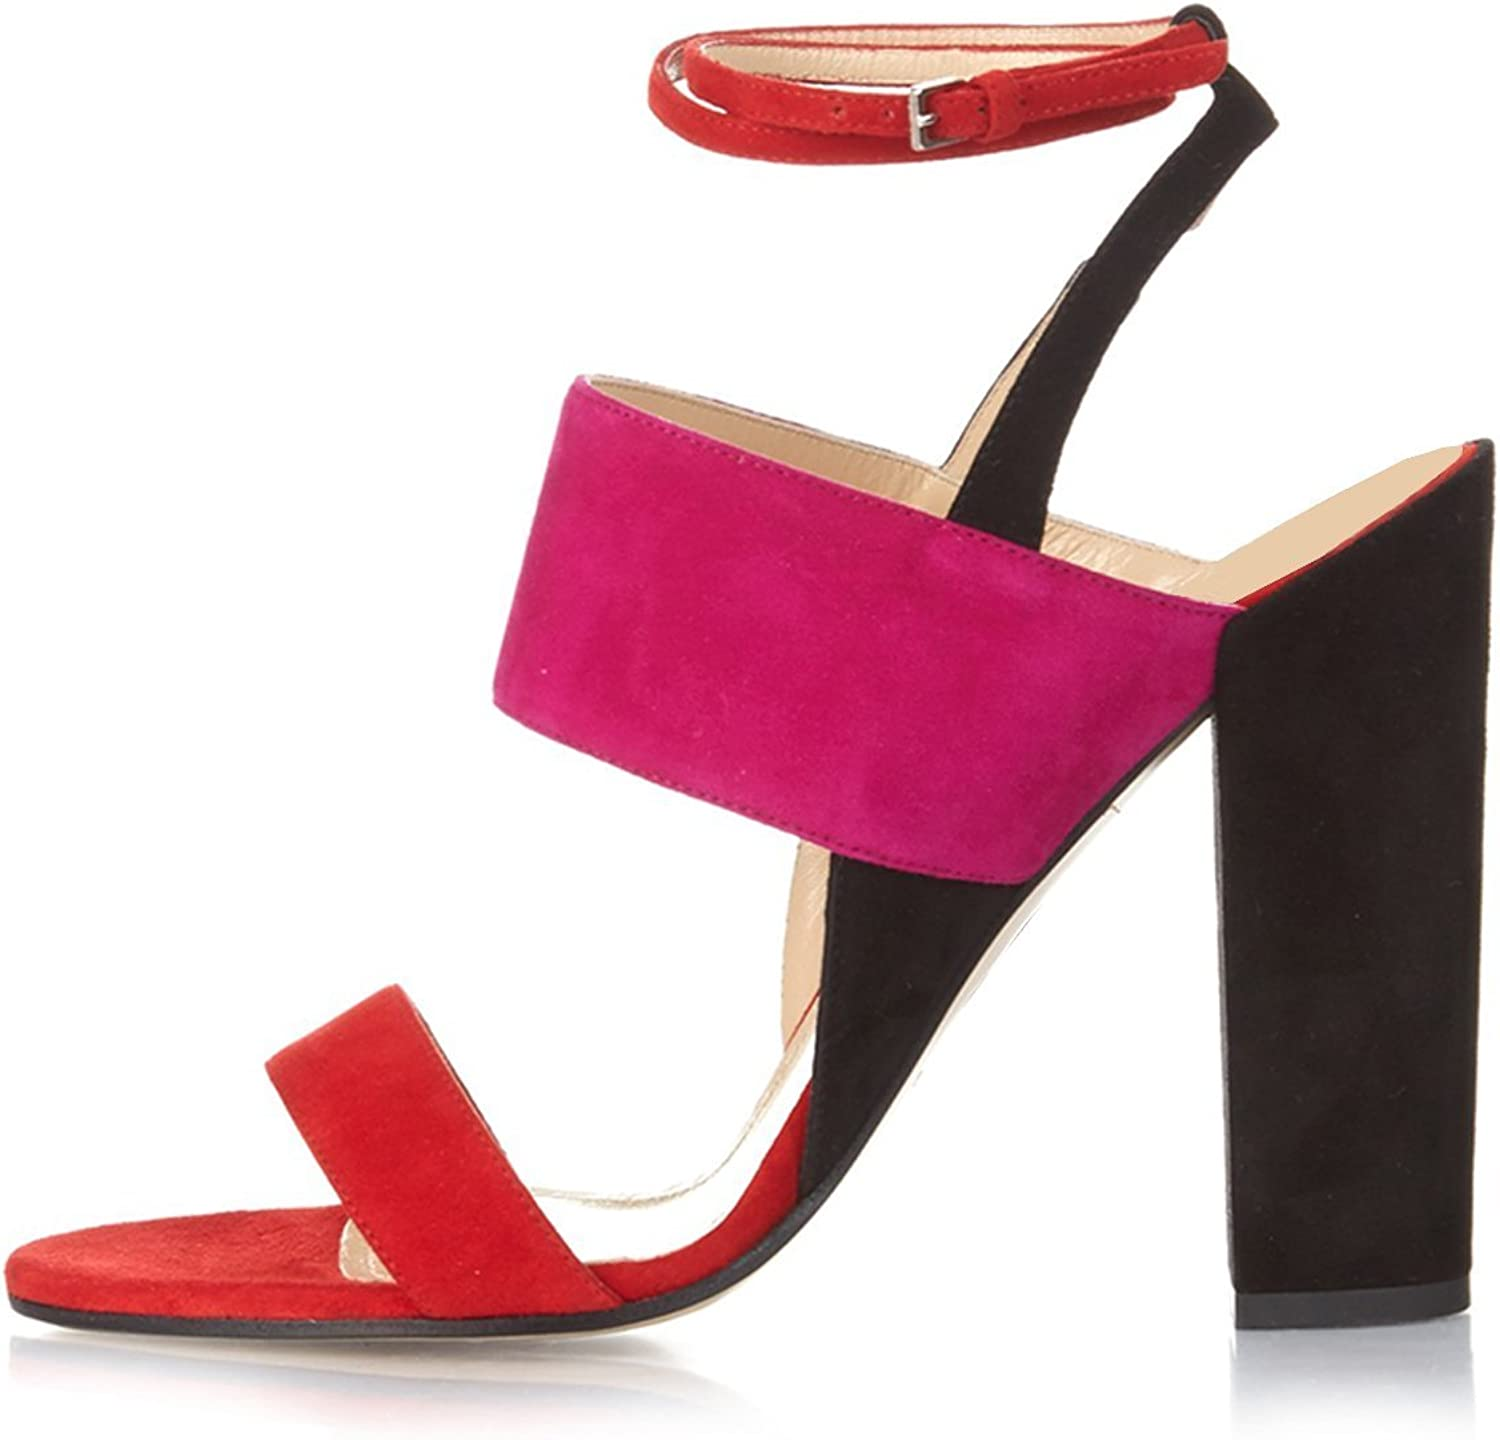 YDN Women Fashion Chunky High Heel Sandals Ankle Straps Slingback Pumps Open Toe shoes